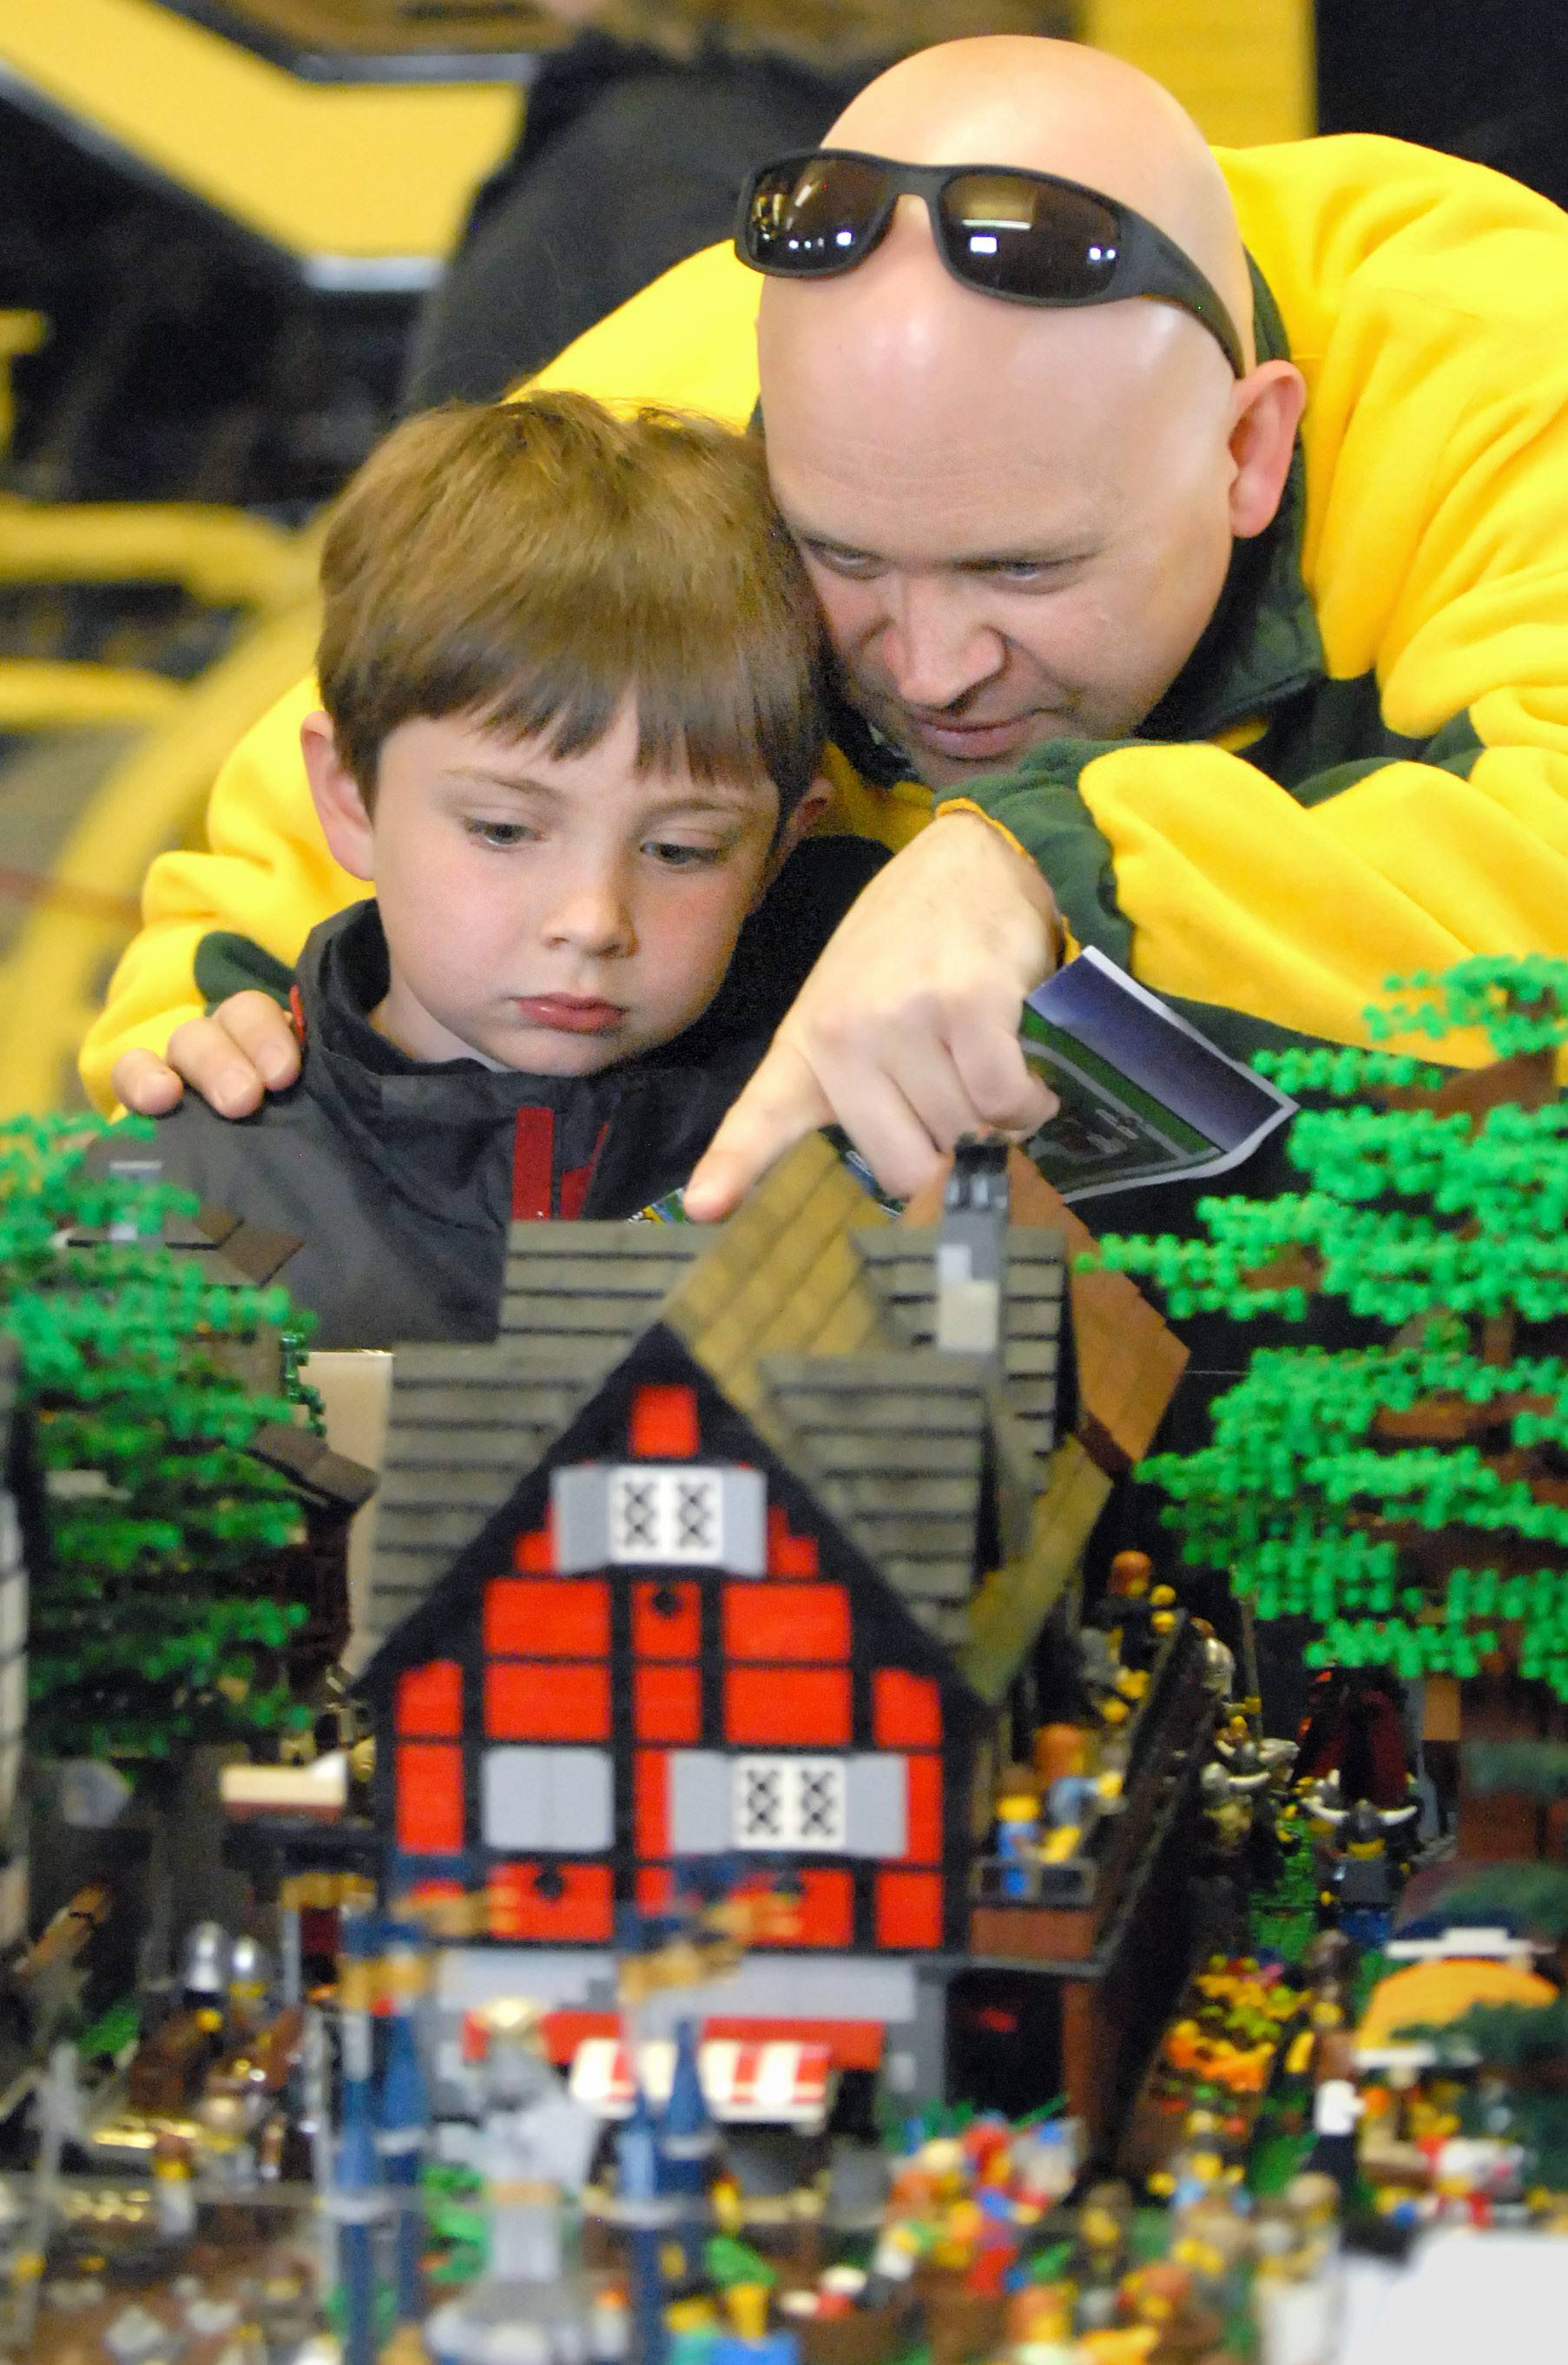 "Steve Drews, of North Aurora, points out details to his son, Philip, 6, of the medieval city created by Dale Klein, of Hickory Hills, on display at Blackberry Farm's LEGO Bash event in Aurora on Sunday. Both are LEGO fans and Steve says seeing the LEGO displays is like taking a ""trip back to childhood."" Members of the Northern Illinois LEGO Train Club set up displays at the farm over the weekend."